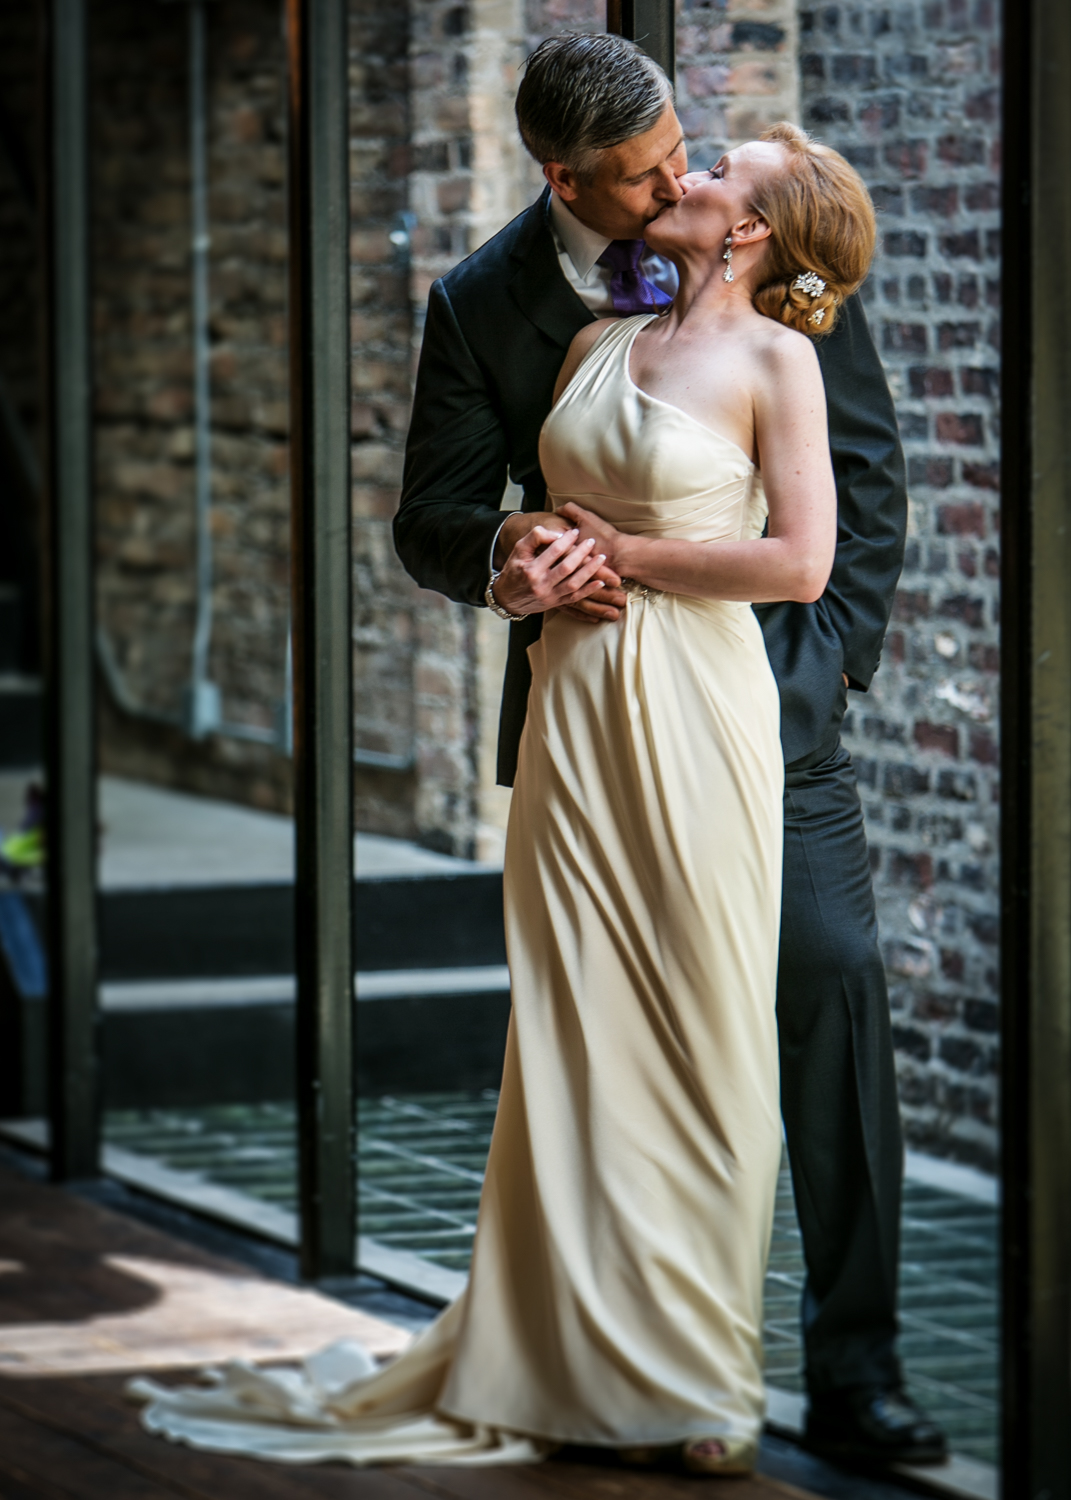 One of my favorite photos from the wedding..so sexy and romantic.